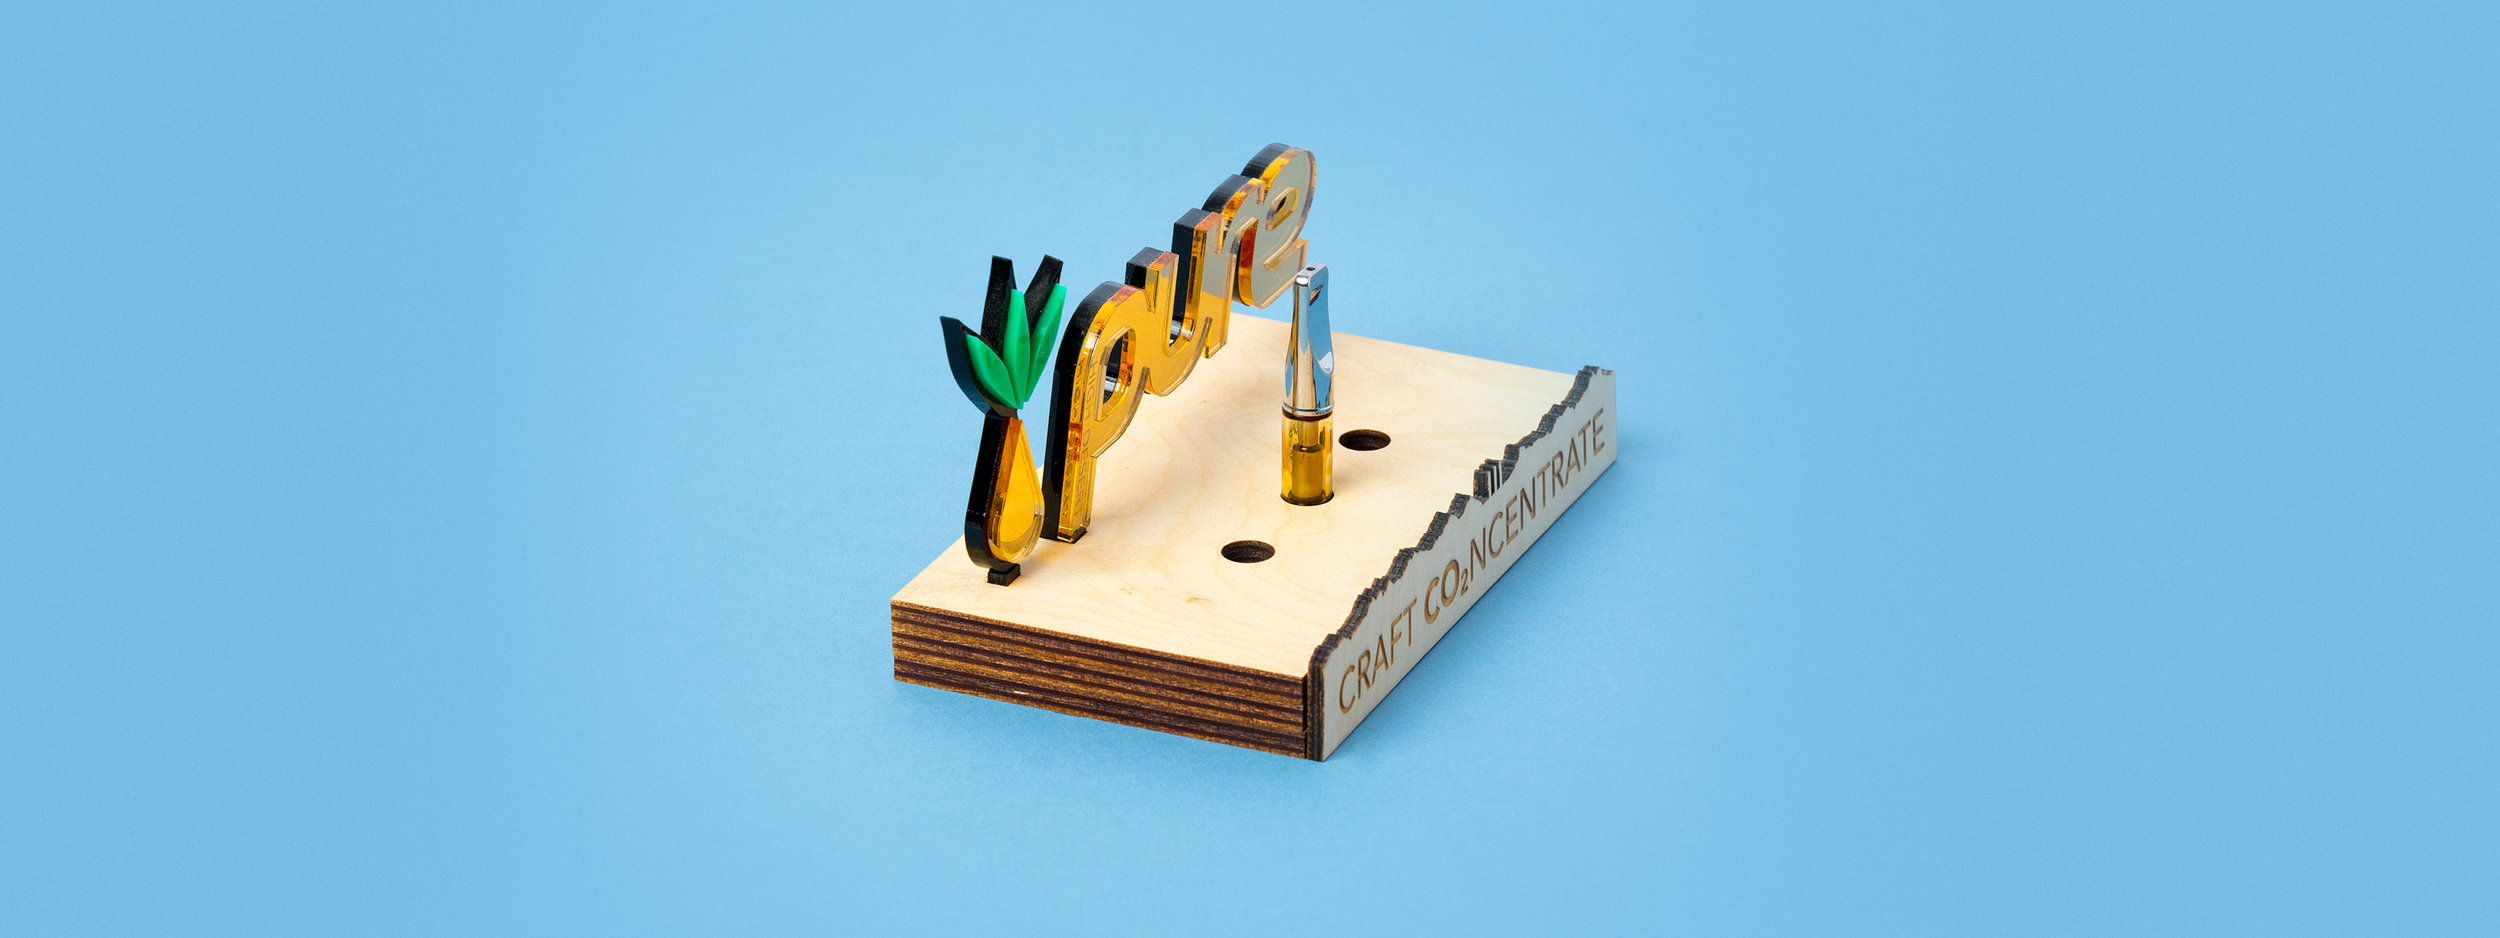 in-store display, POP discplay, concentrate display, laser cut acrylic, laser cut wood, POS display